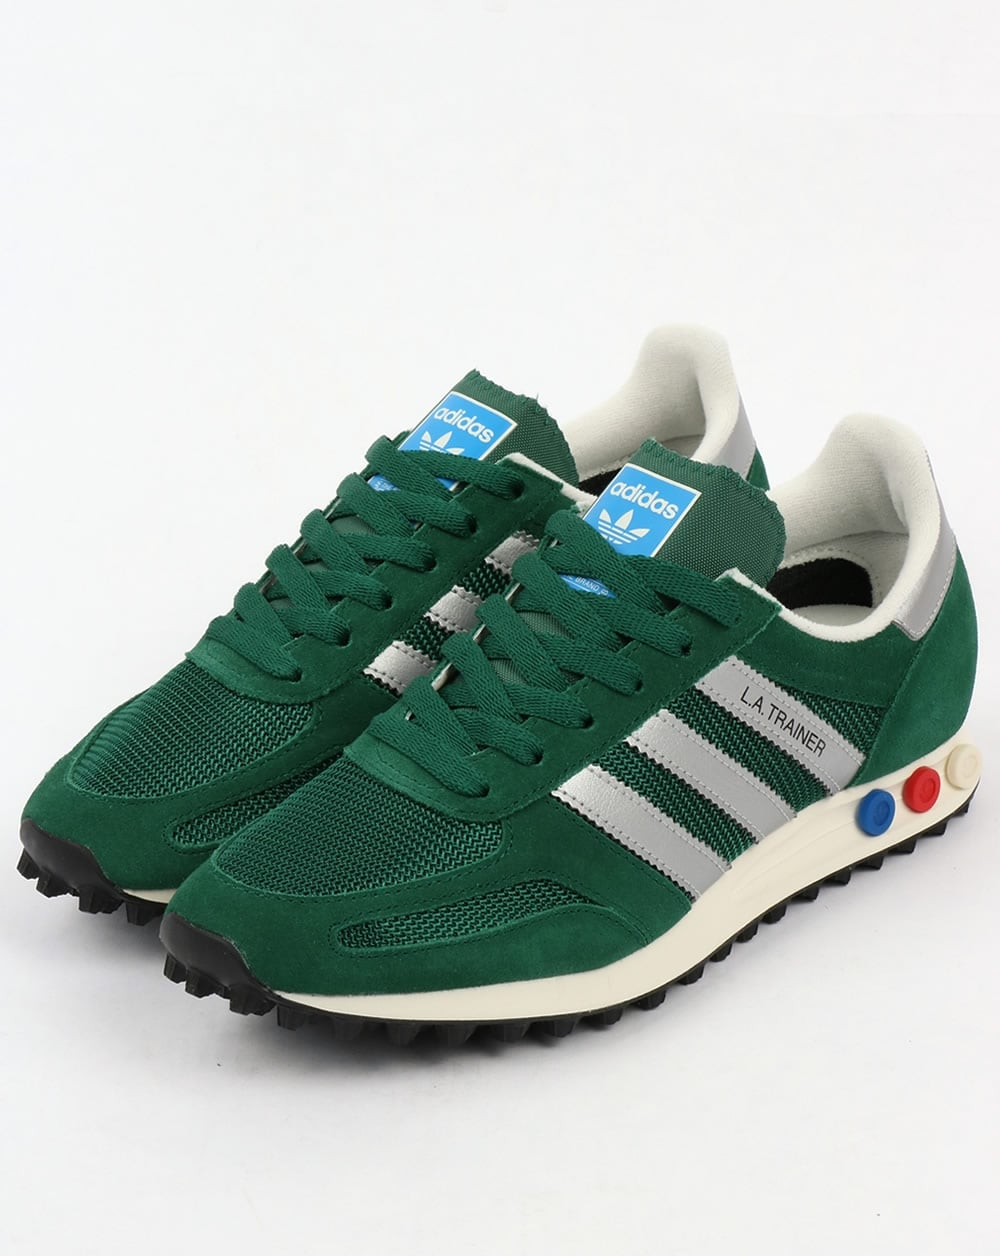 4f5f4a6ce1ee adidas Trainers Adidas La Trainer Og Green silver